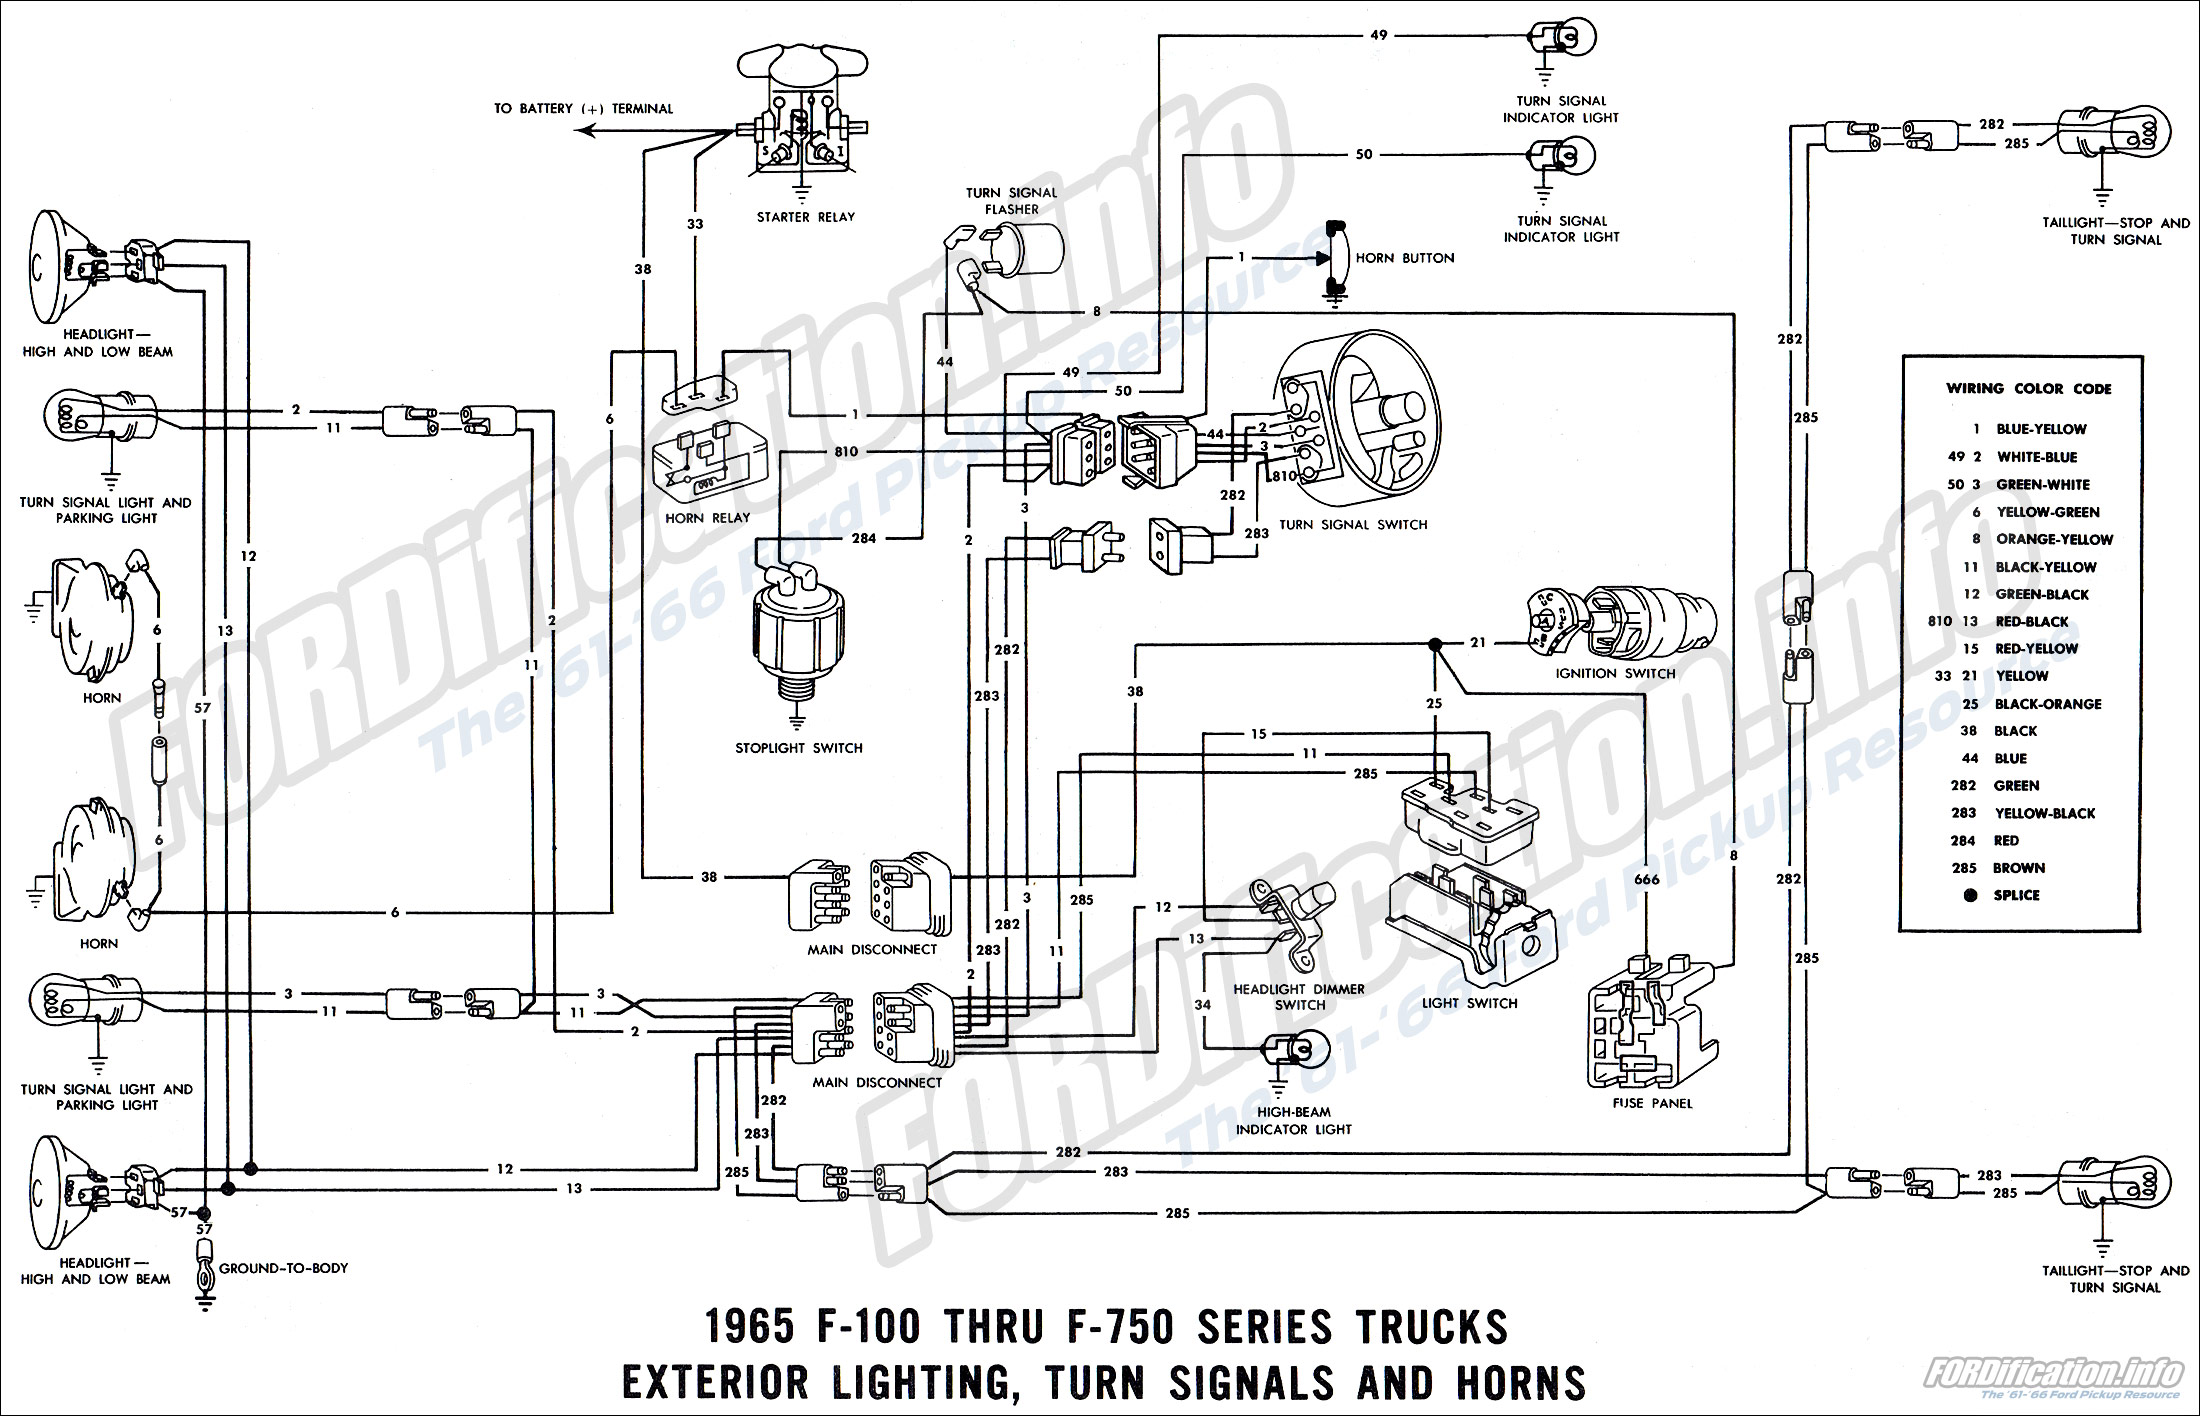 Incredible 1965 Ford Truck Wiring Diagrams Fordification Info The 61 66 Wiring Cloud Onicaalyptbenolwigegmohammedshrineorg